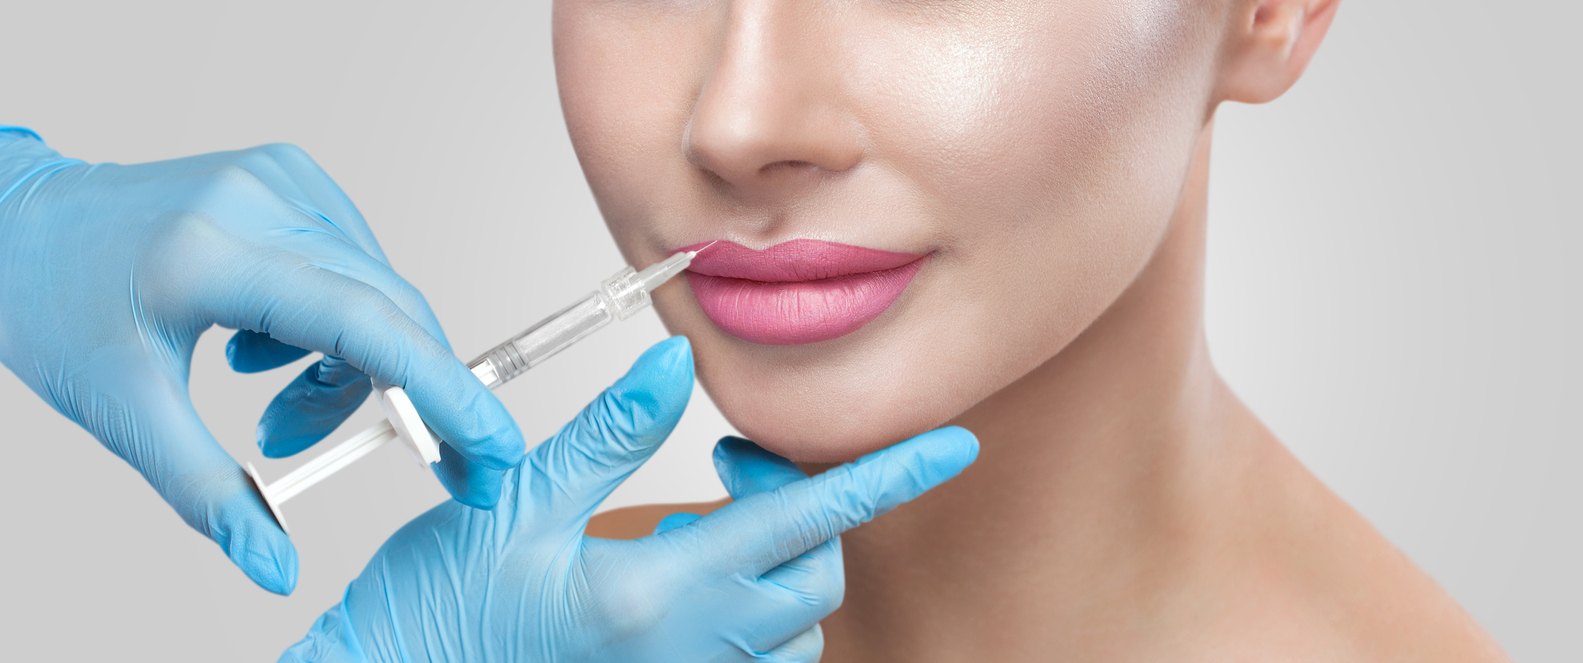 Steps To Finding Quality Dermal Filler Providers